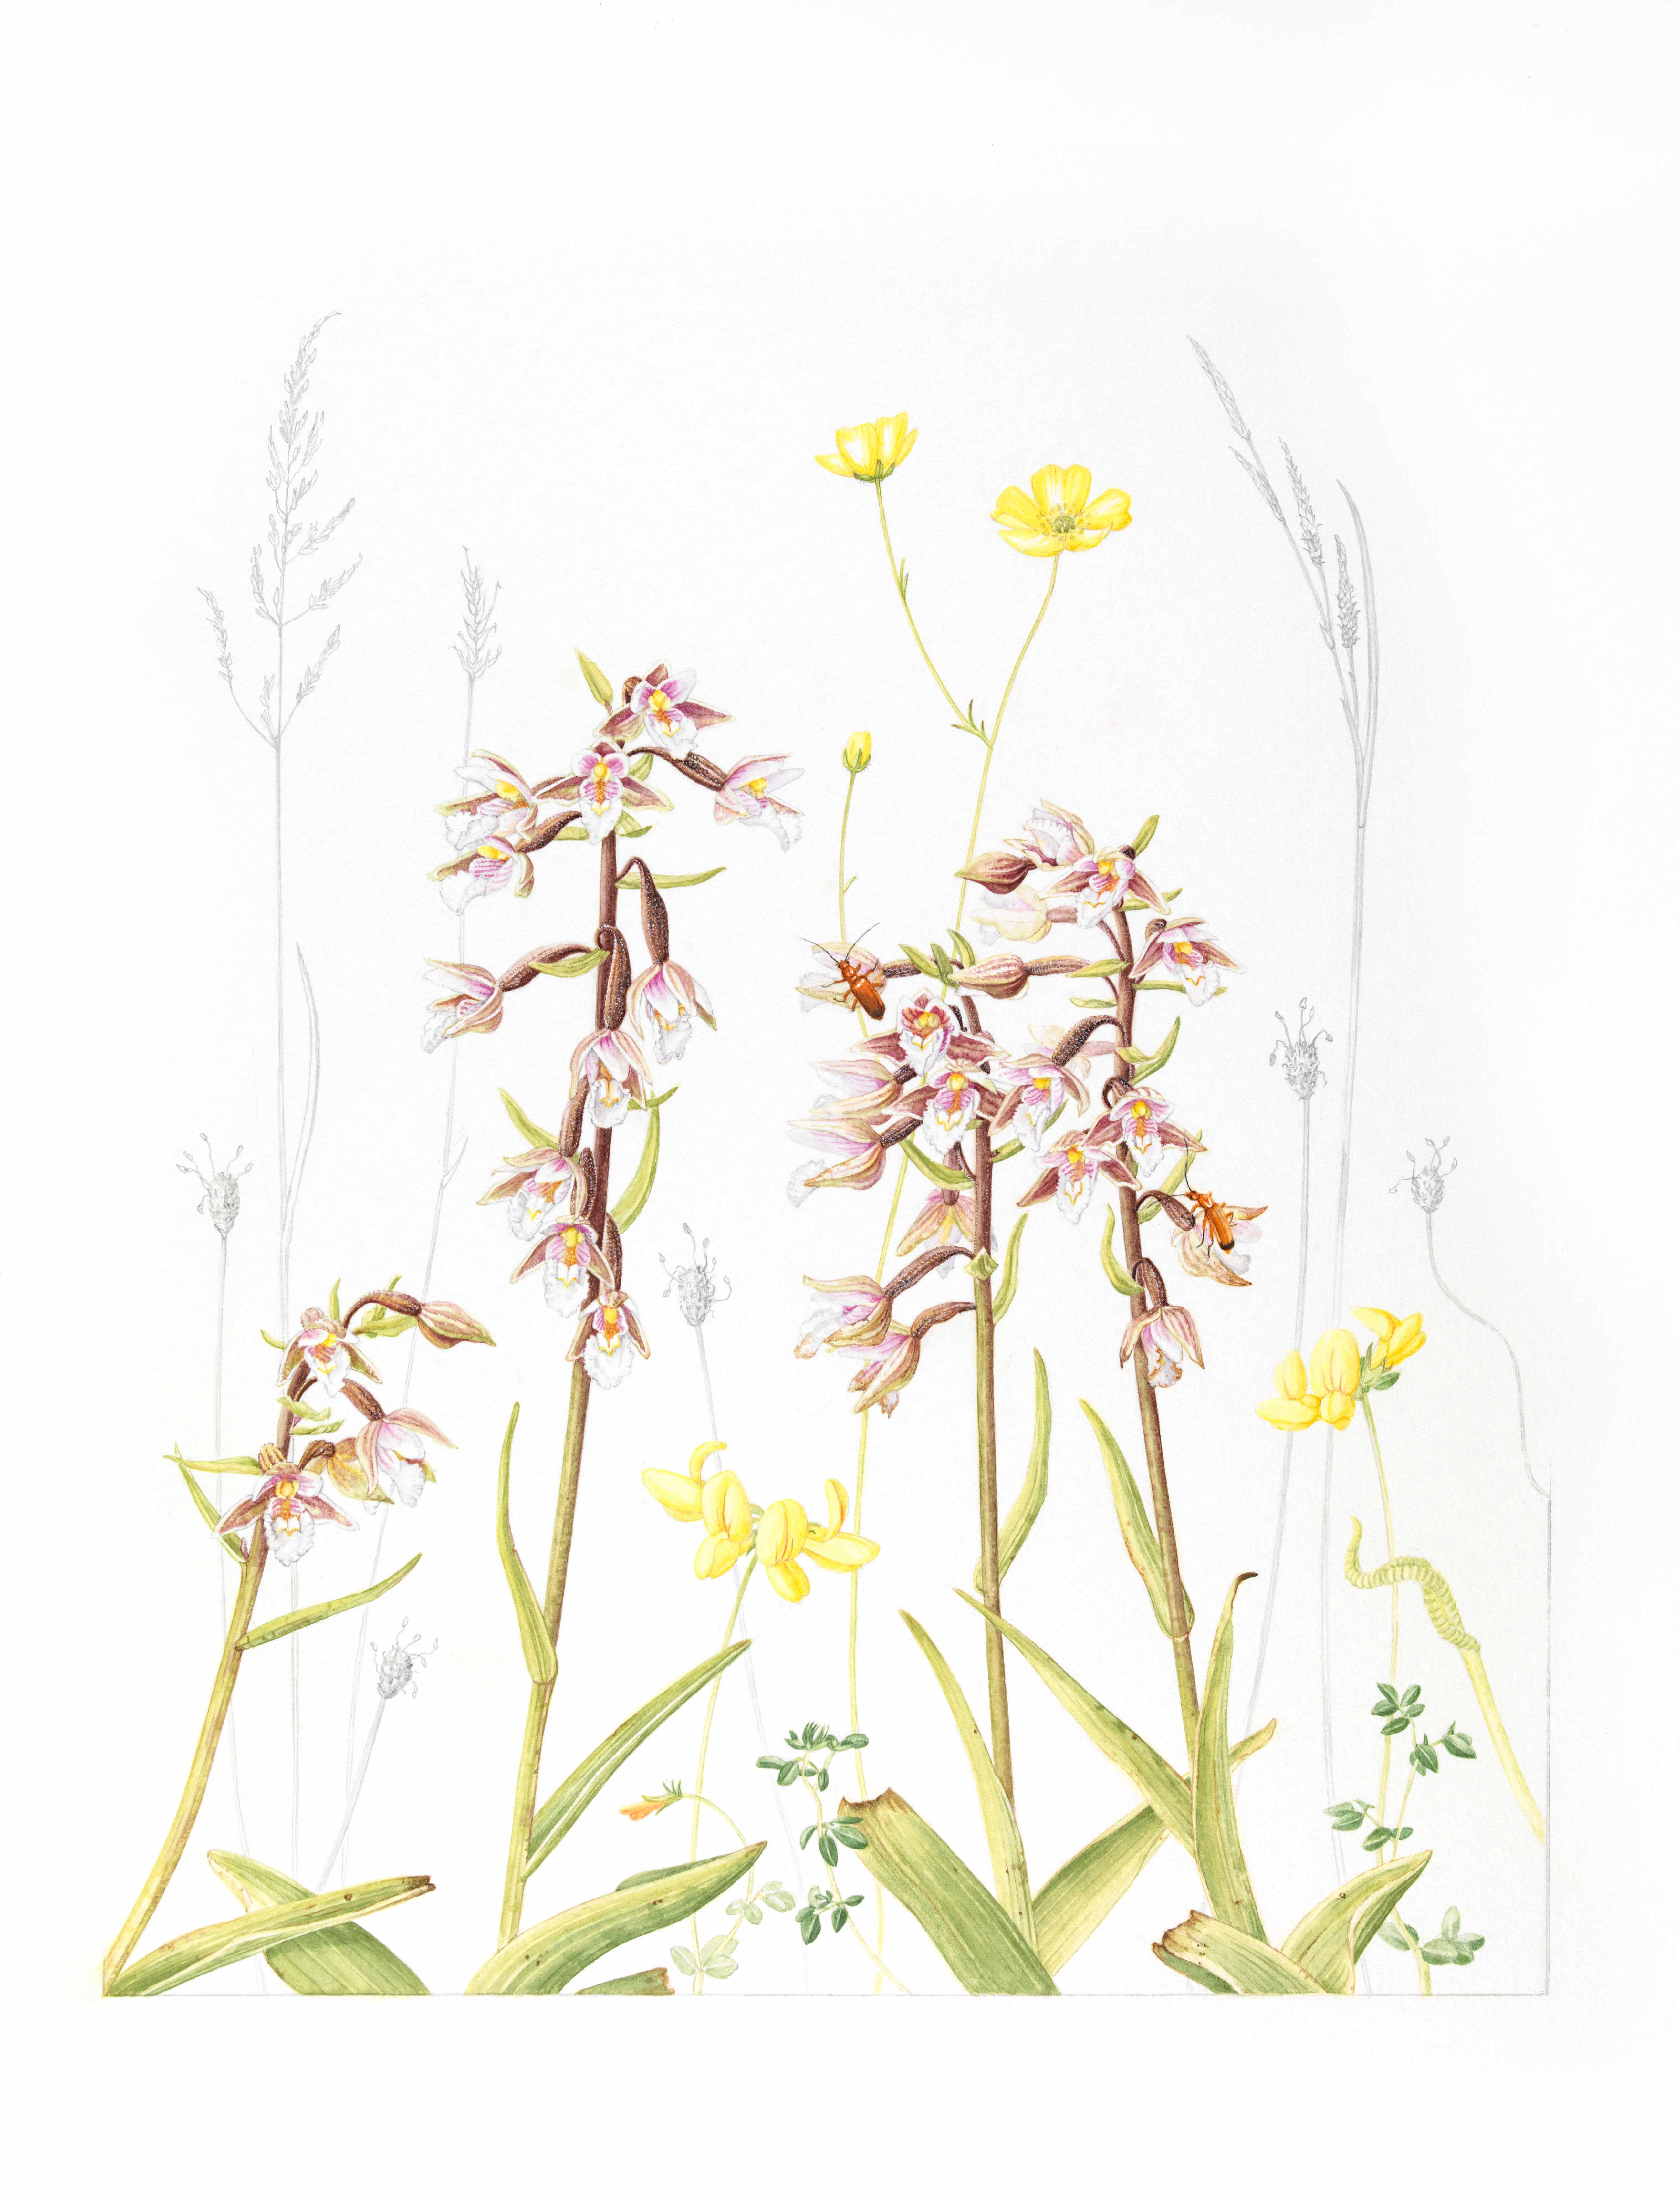 Claire Ward, Epipactis palustris, Ruskin's Footsteps, Worldwide Day of Botanical Art